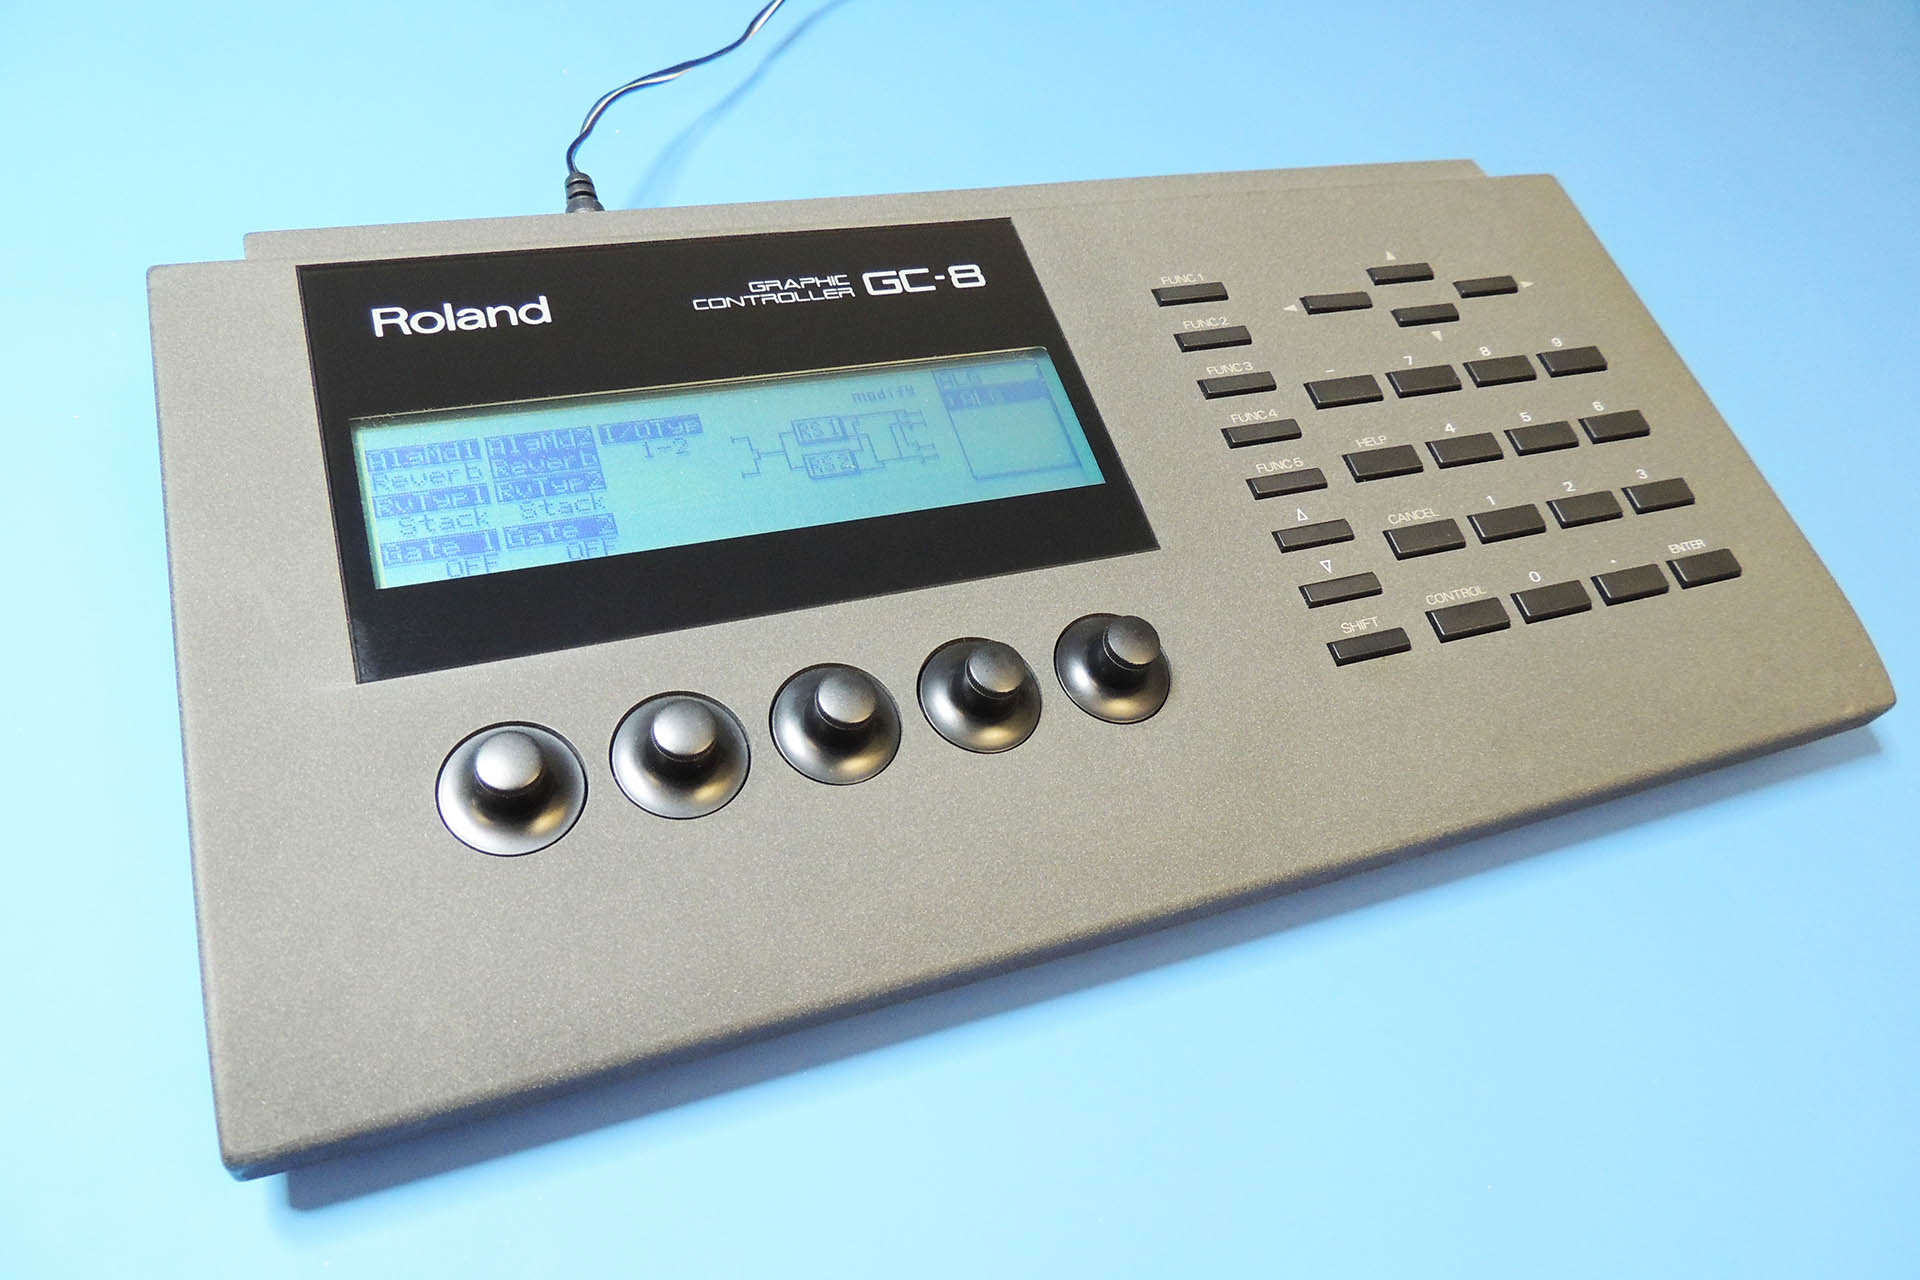 Roland GC-8 with fully working LCD backlight